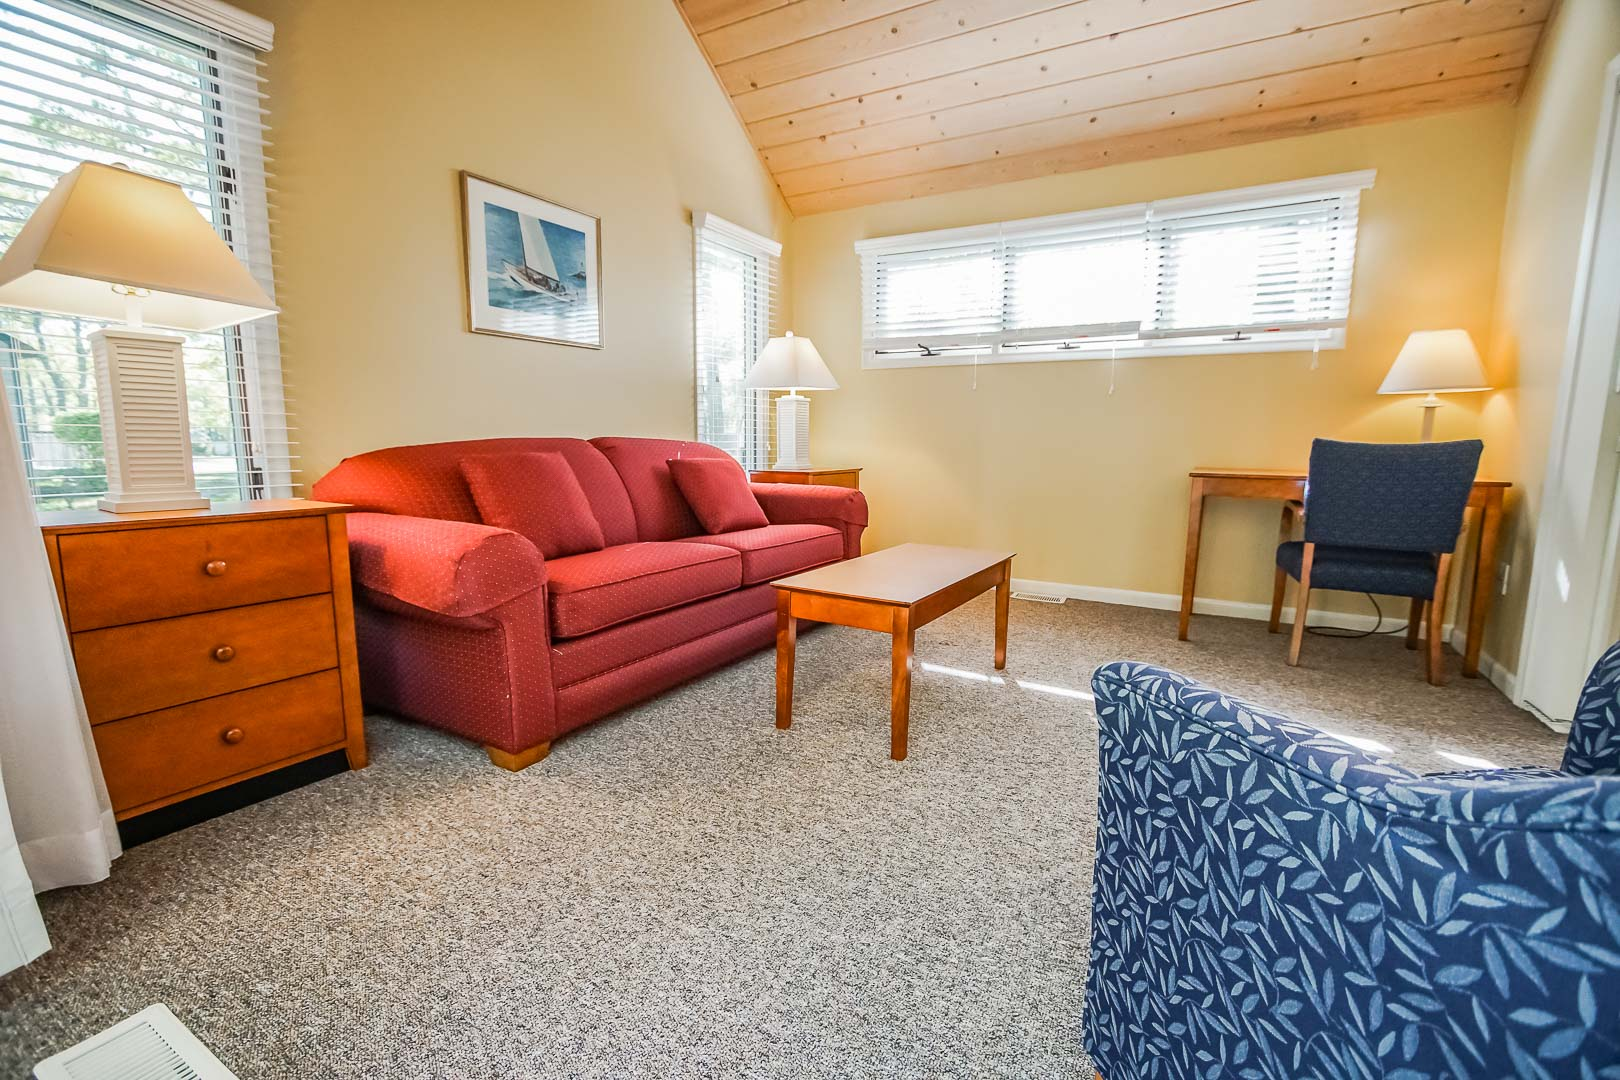 A peaceful living room area at VRI's Cape Cod Holiday Estates in Massachusetts.